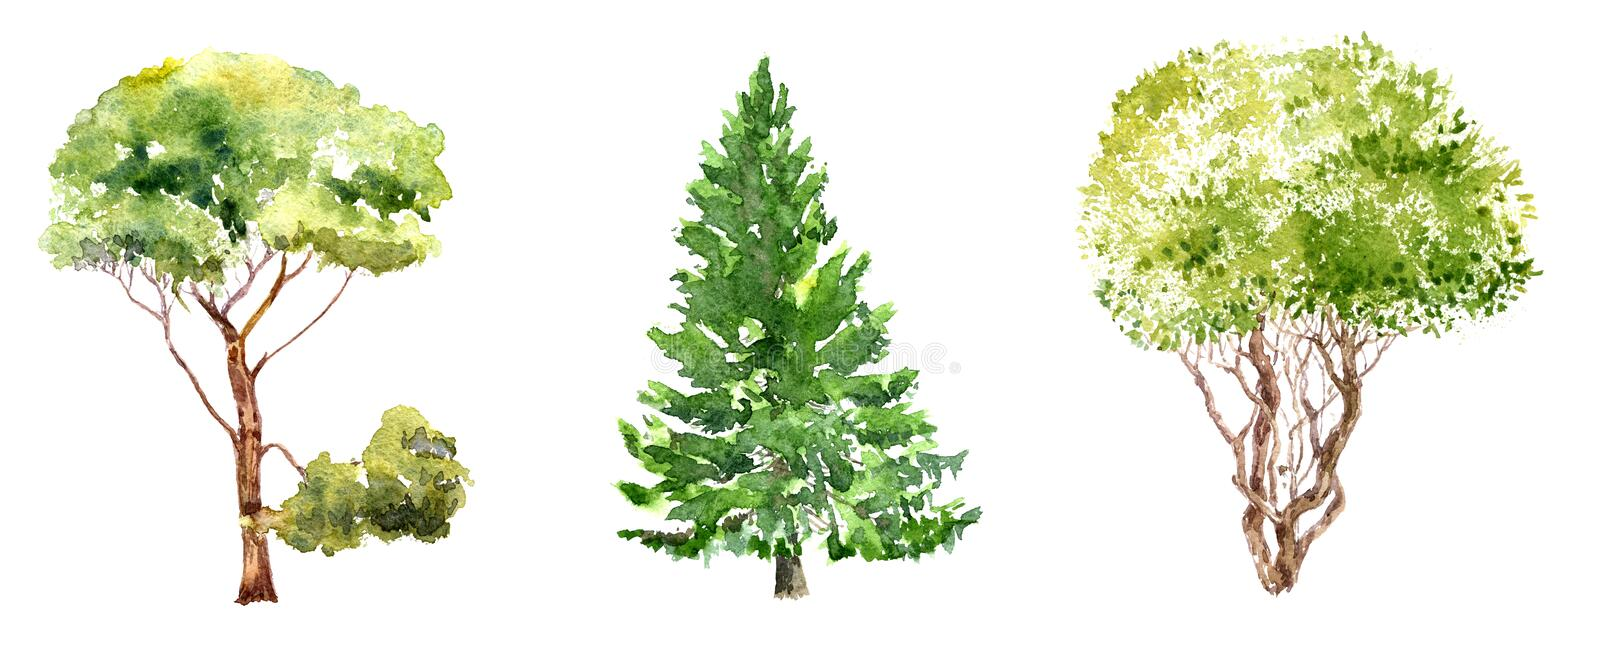 Set of trees drawing by watercolor royalty free illustration